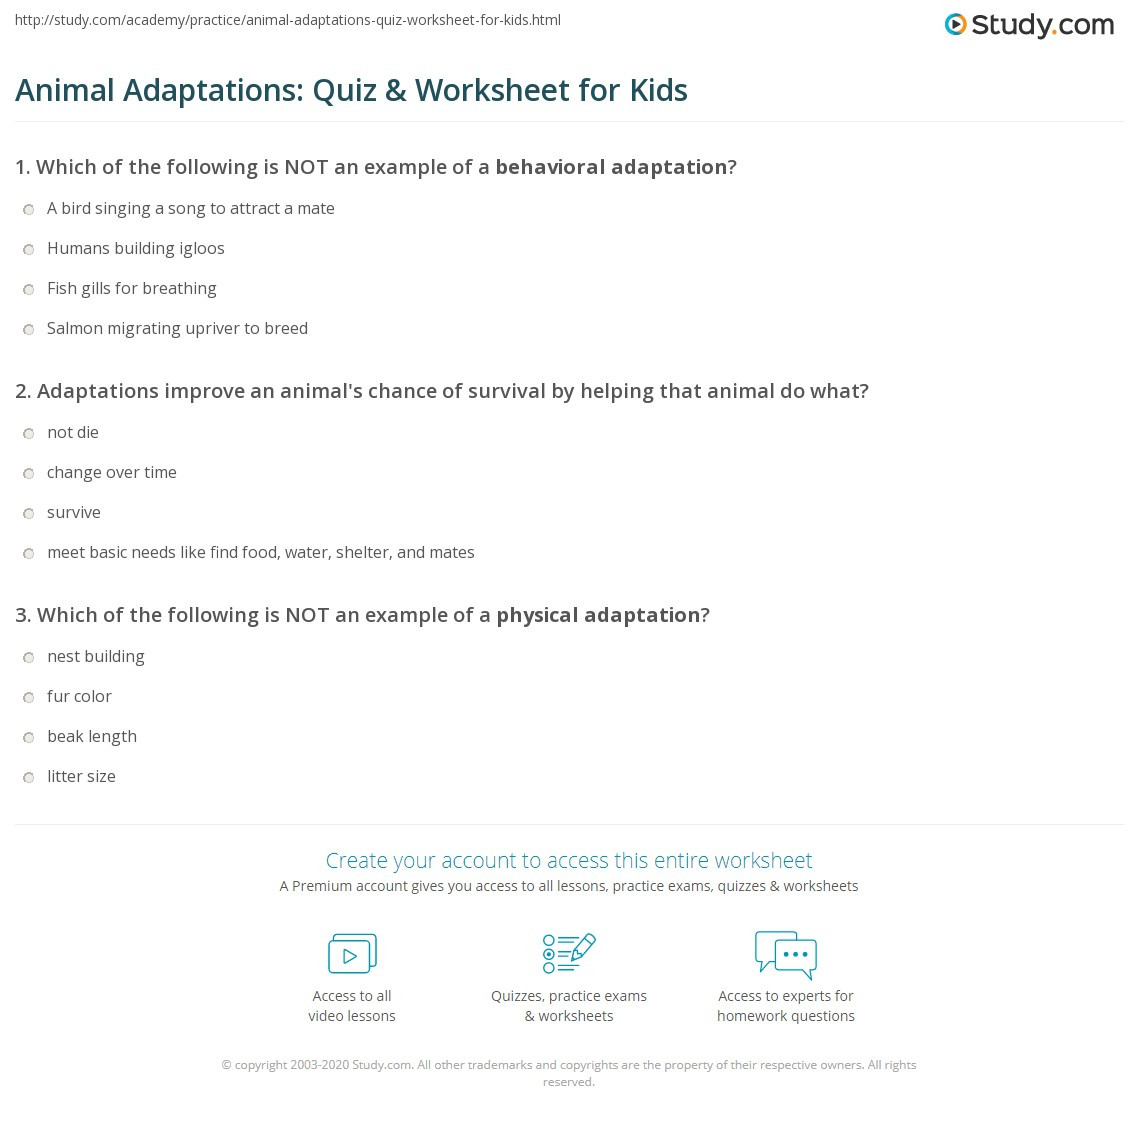 Adaptation Worksheets for Middle School Animal Adaptations Quiz & Worksheet for Kids